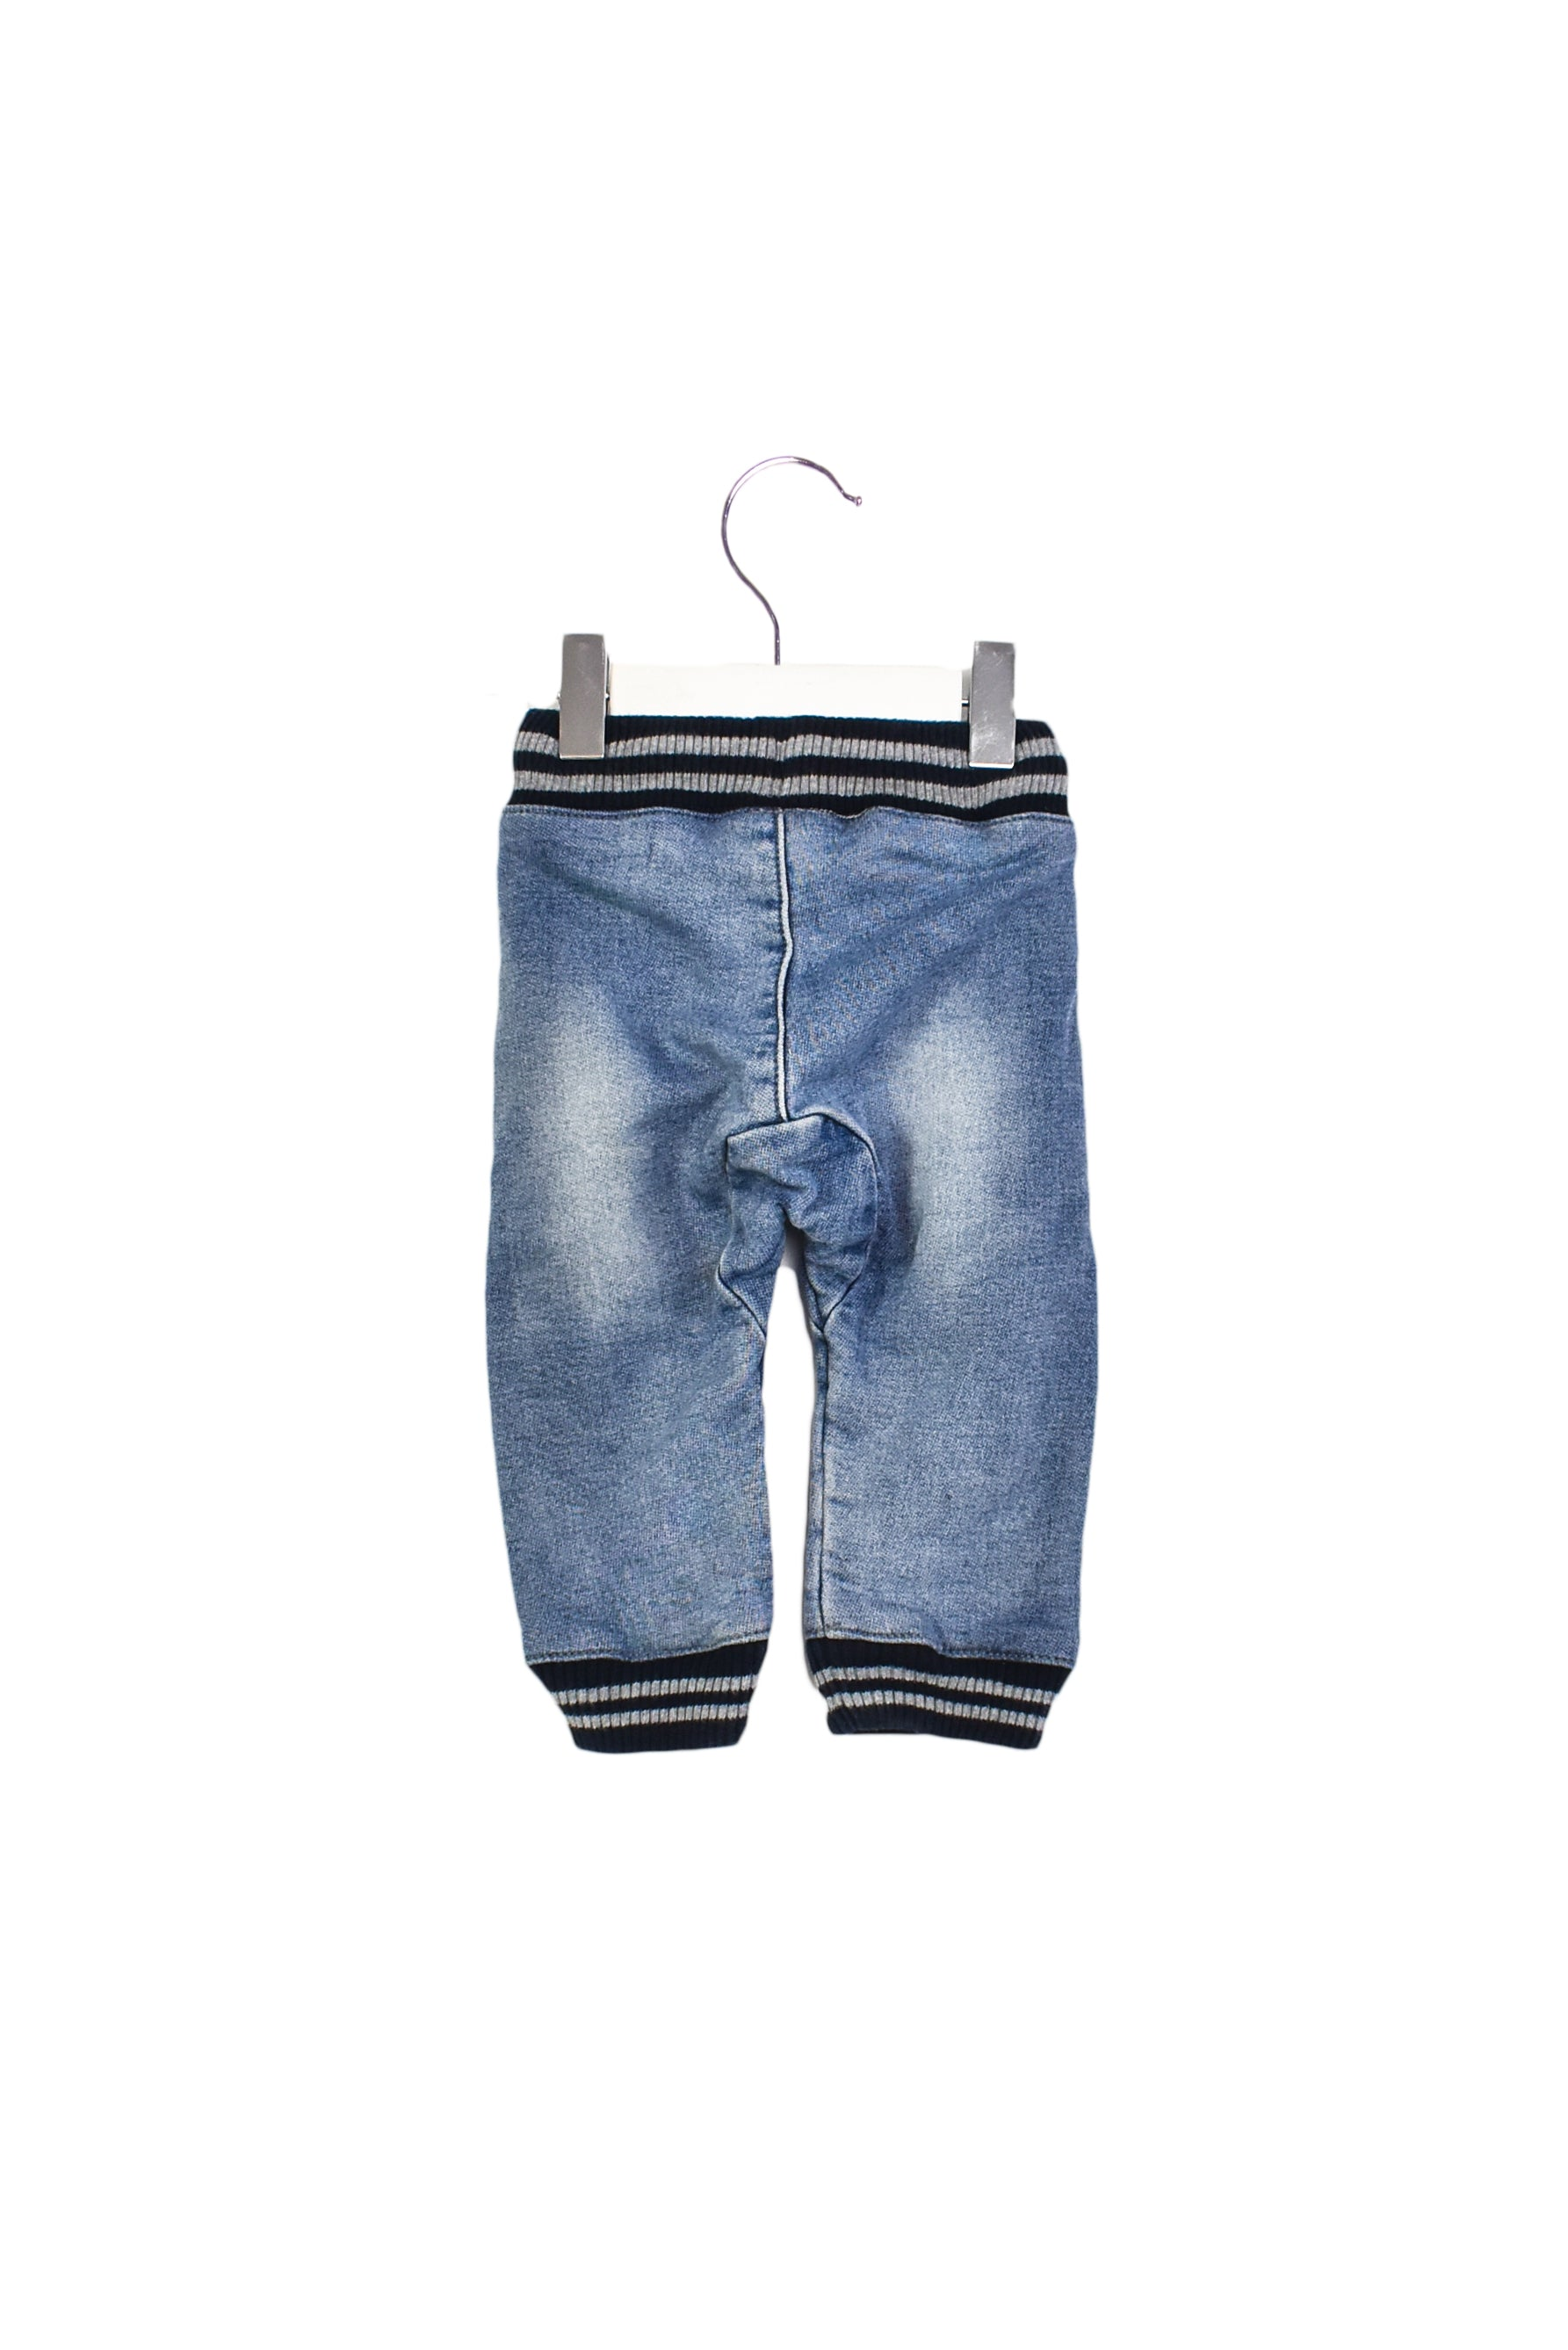 10013235 Seed Baby~Jeans 6-12M at Retykle